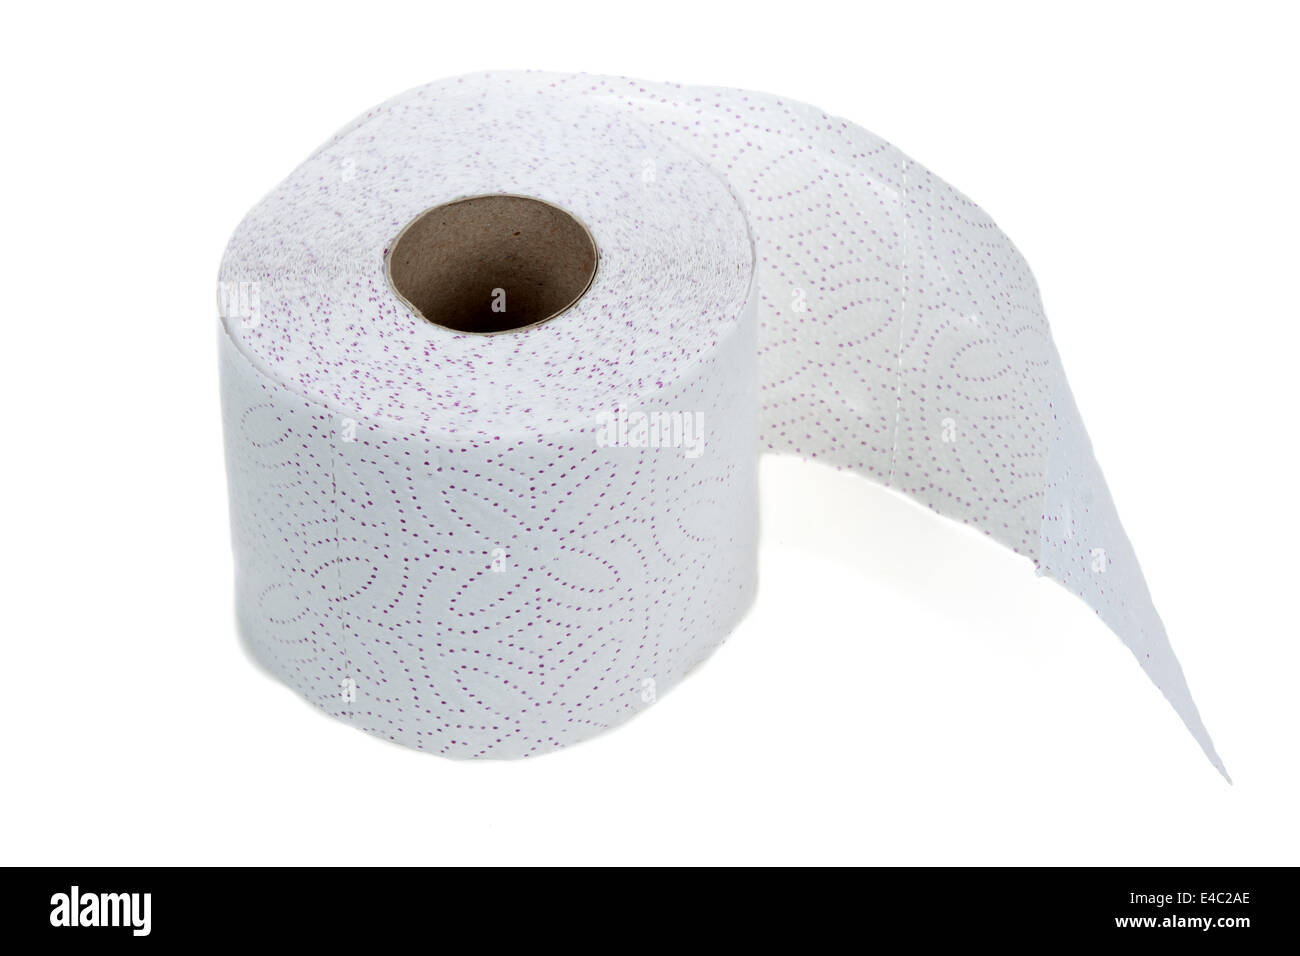 Perforated toilet paper in roll - Stock Image